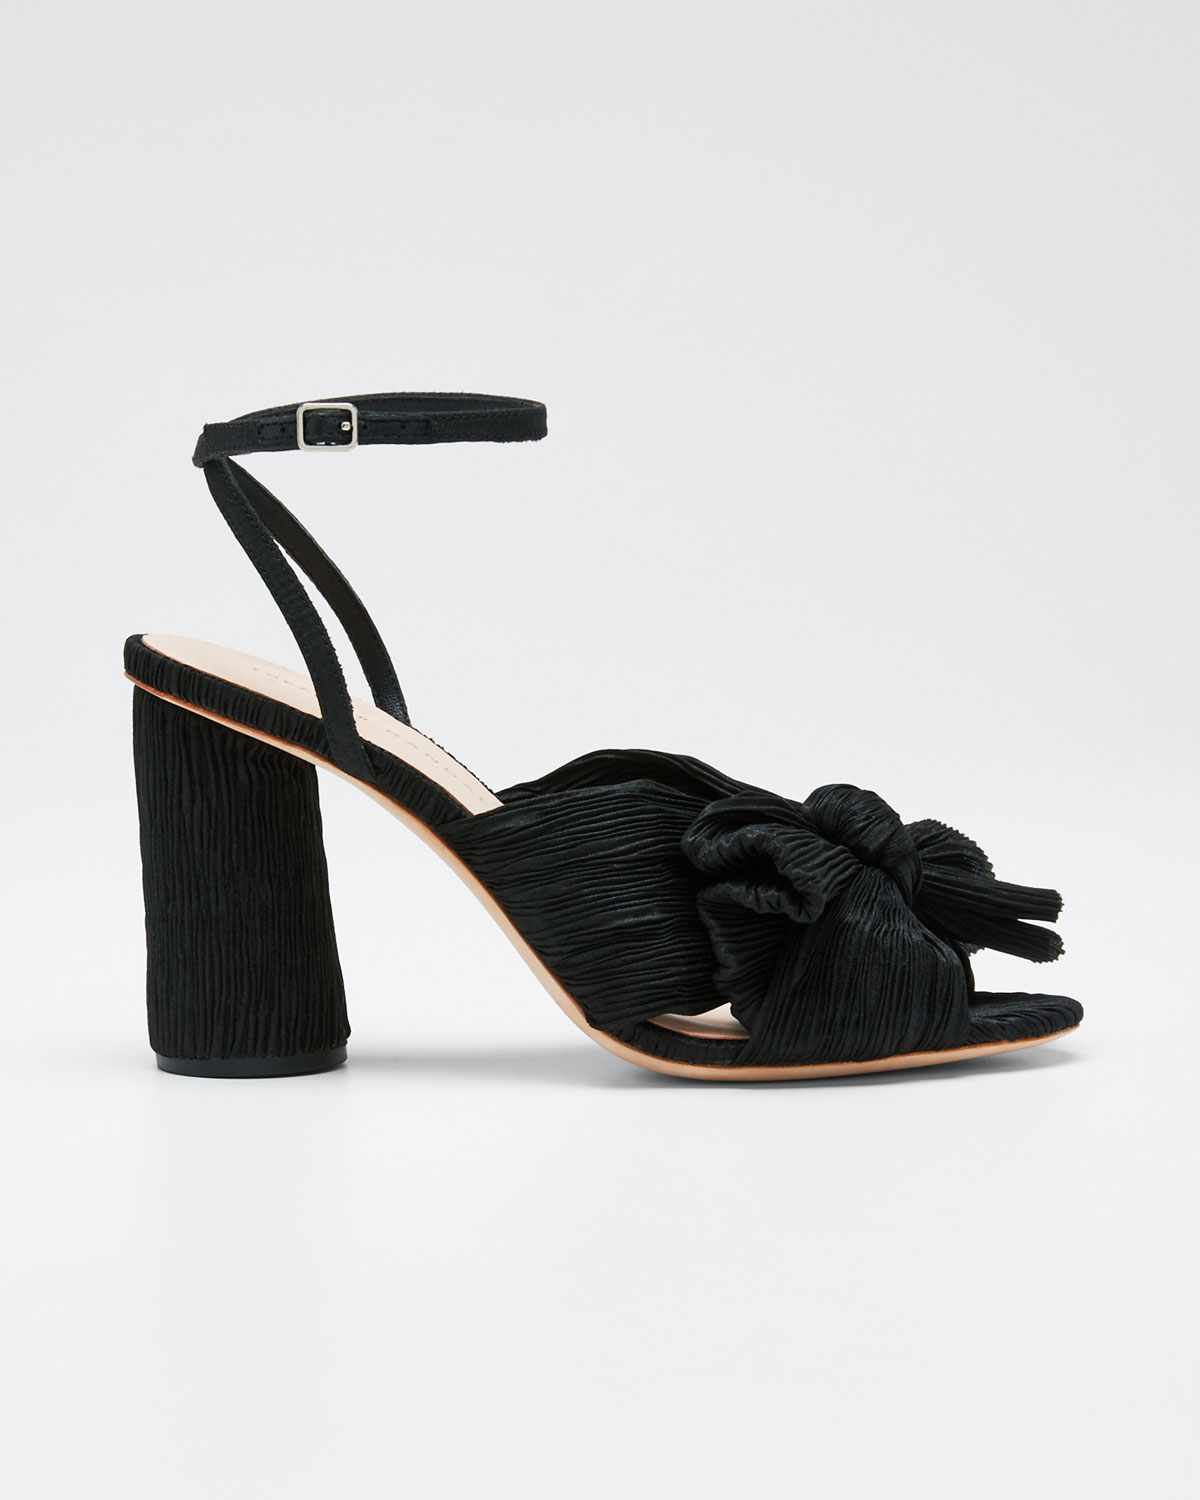 Loeffler Randall Sandals CAMELLIA PLEATED KNOT ANKLE-STRAP SANDALS